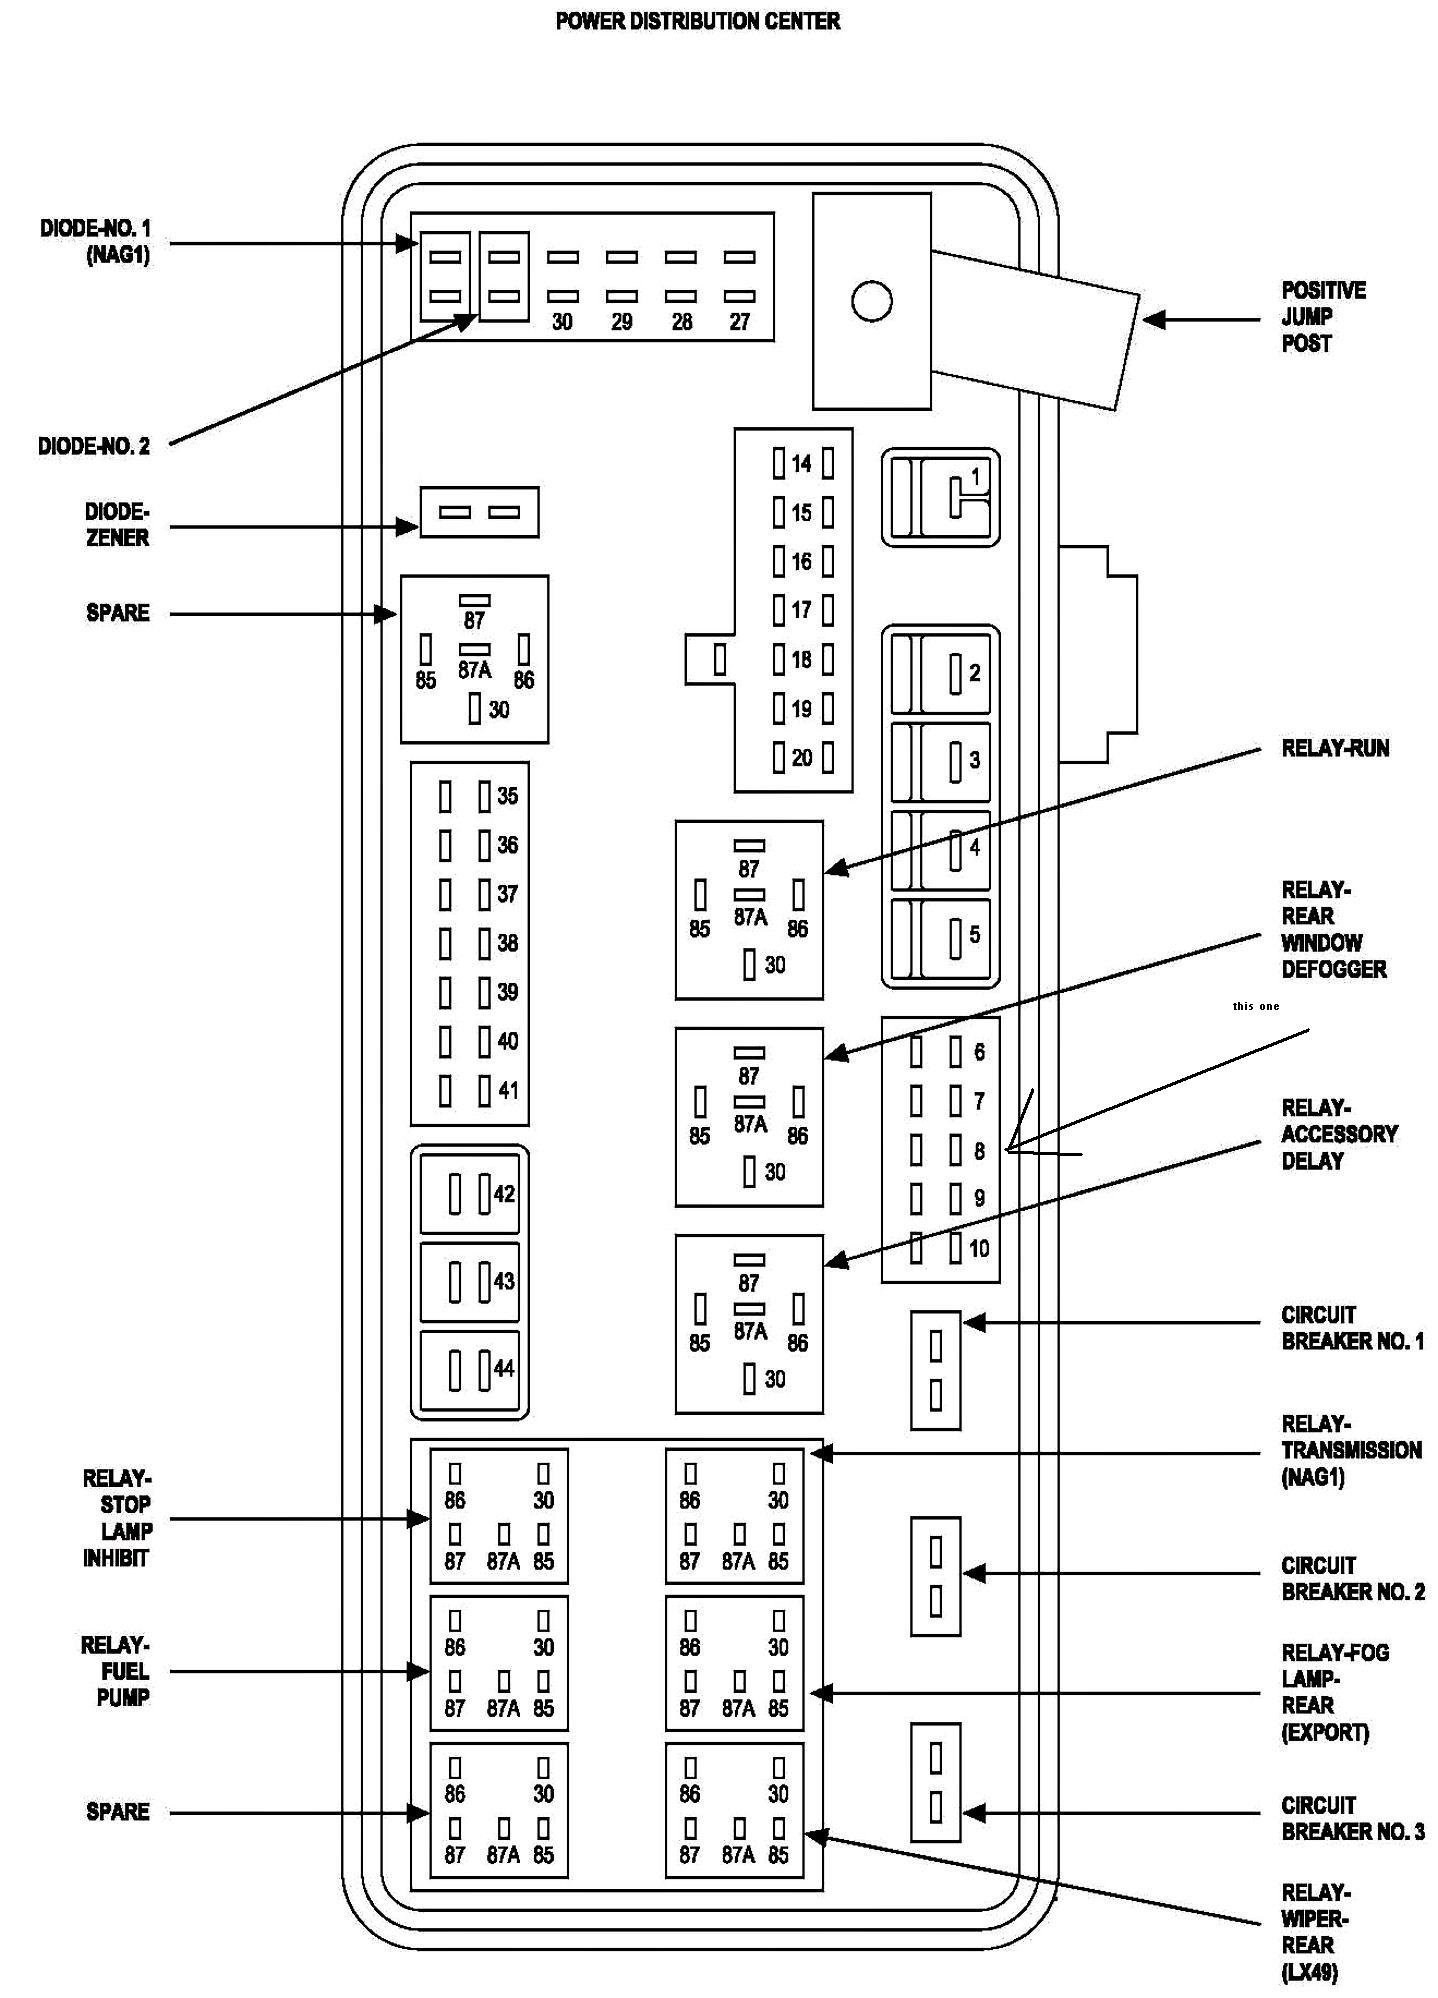 2011 ram fuse box diagram today diagram data schema 2007 Dodge Ram 2500 Fuse Box Diagram 2011 ram fuse box diagram wiring diagram 2011 dodge ram 2500 fuse box diagram 2011 ram